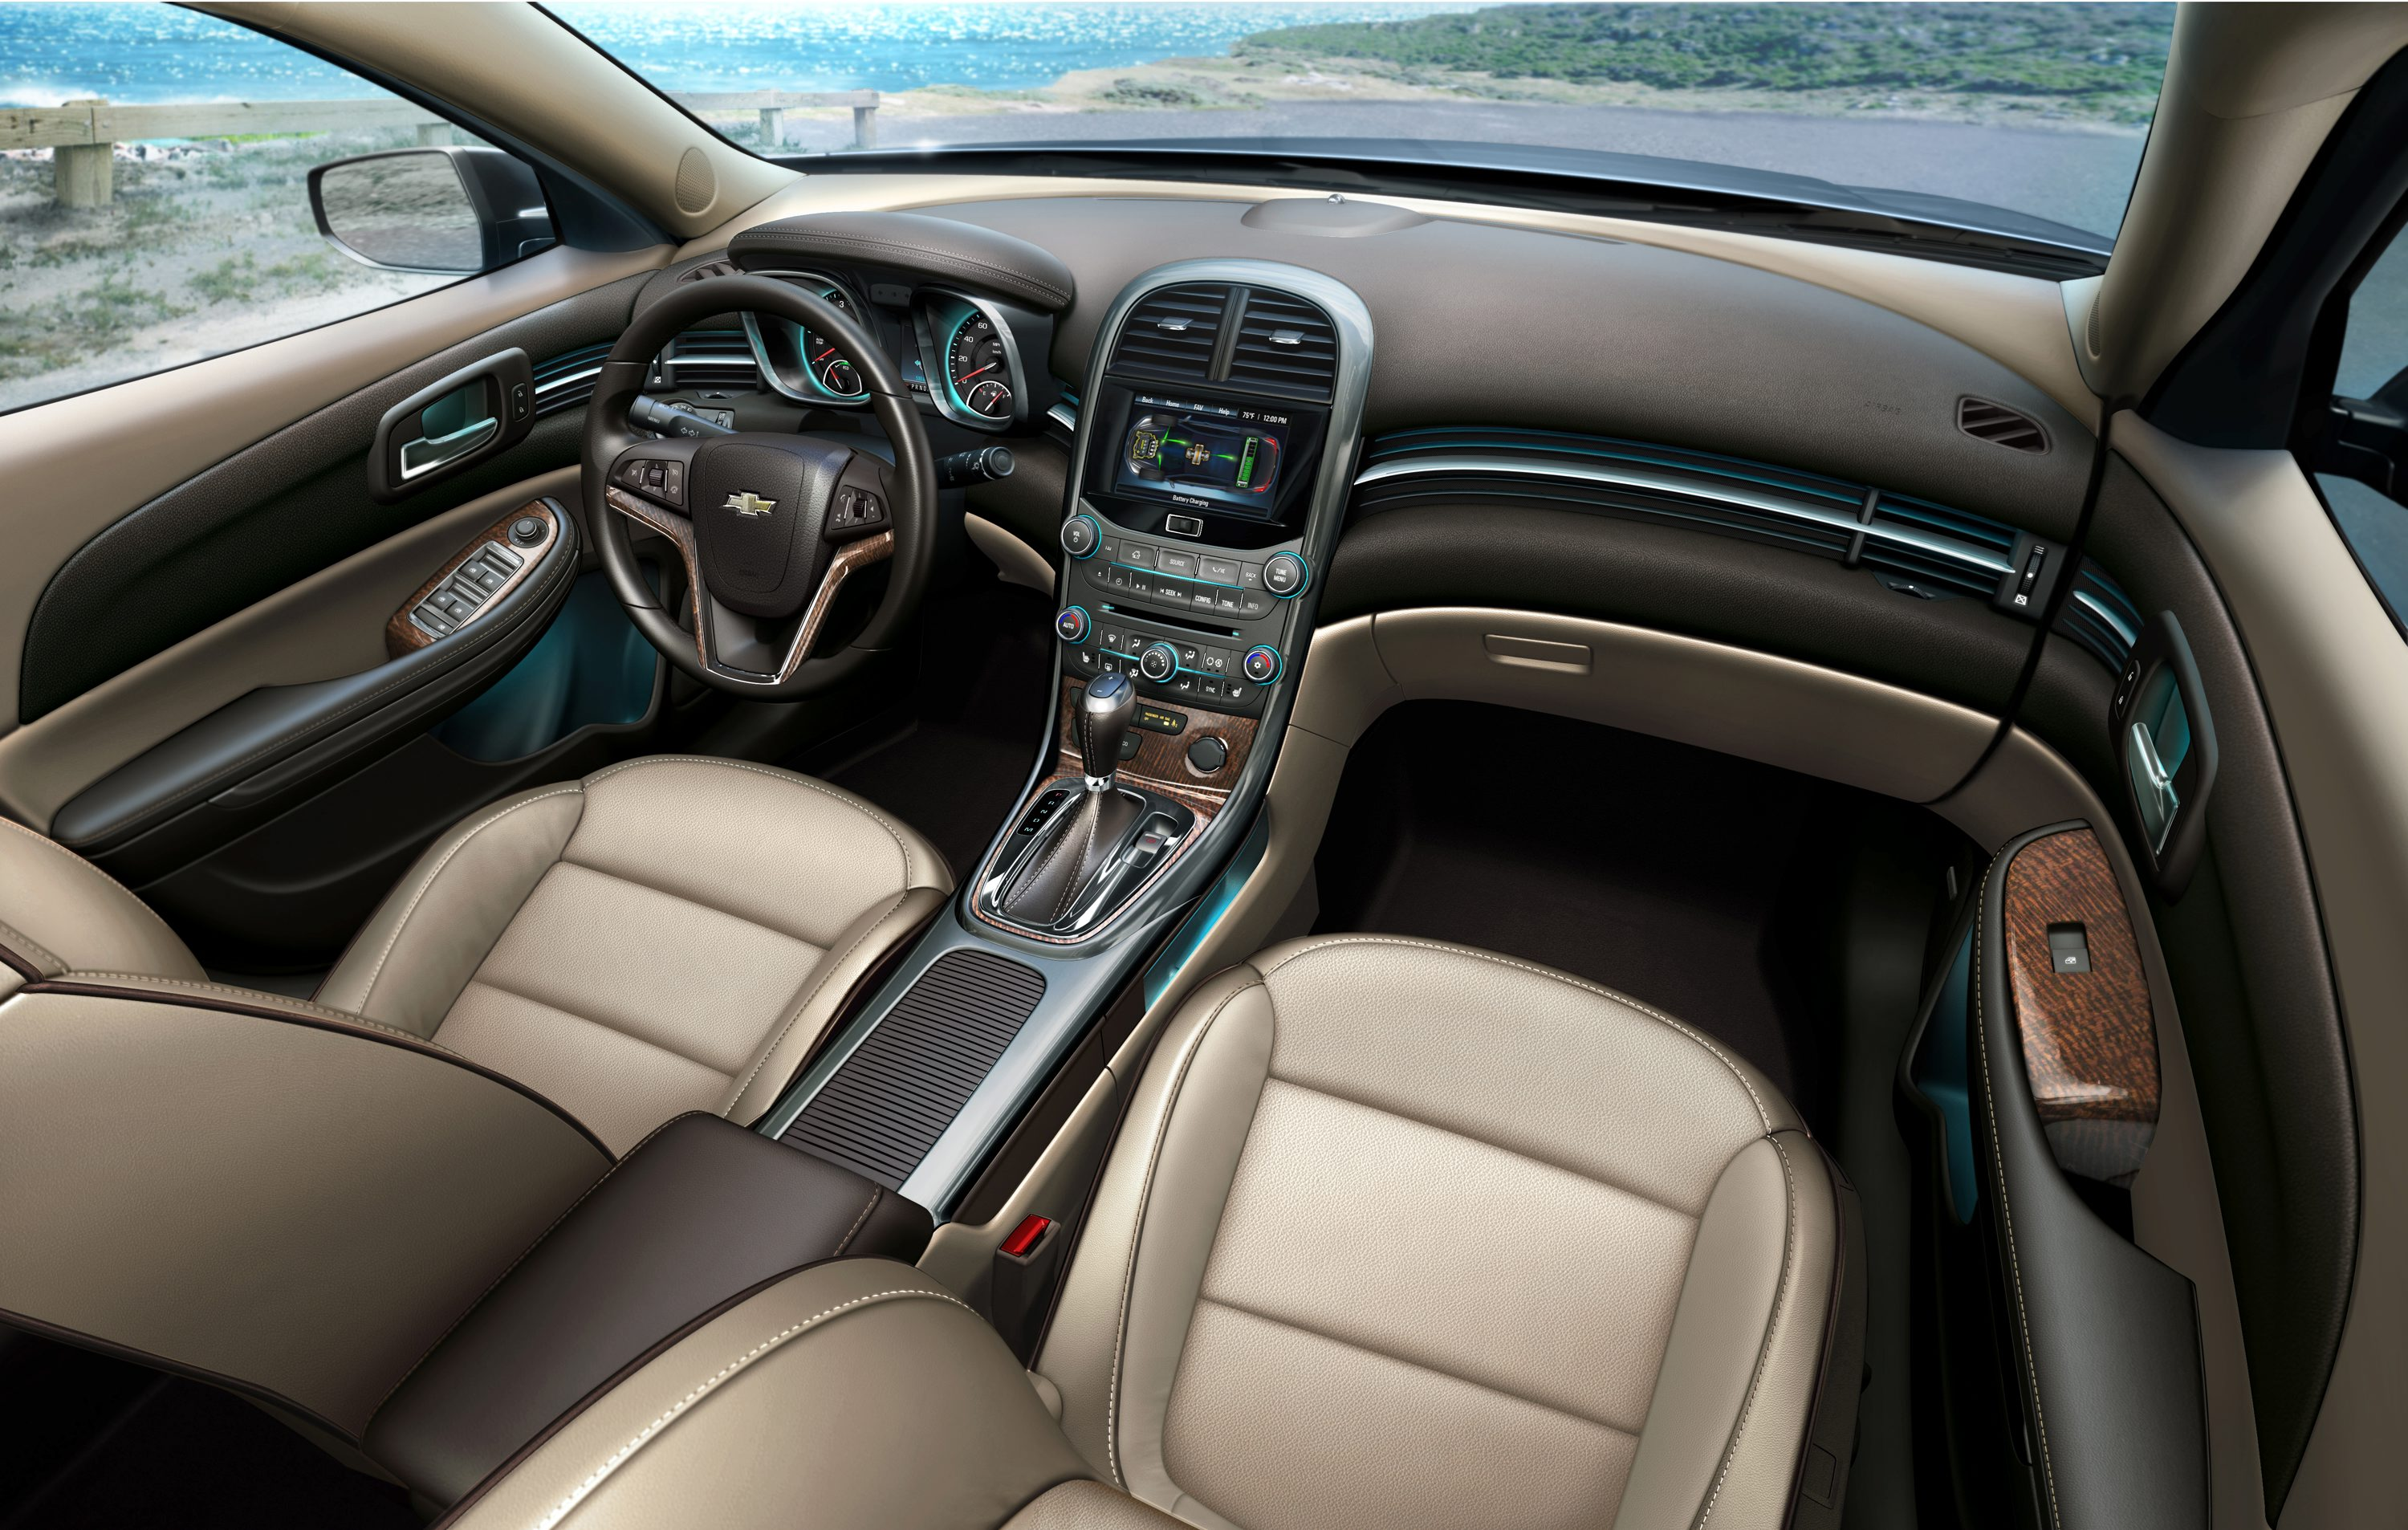 Chevrolet Malibu's Interior Delivers a Touch of Luxury